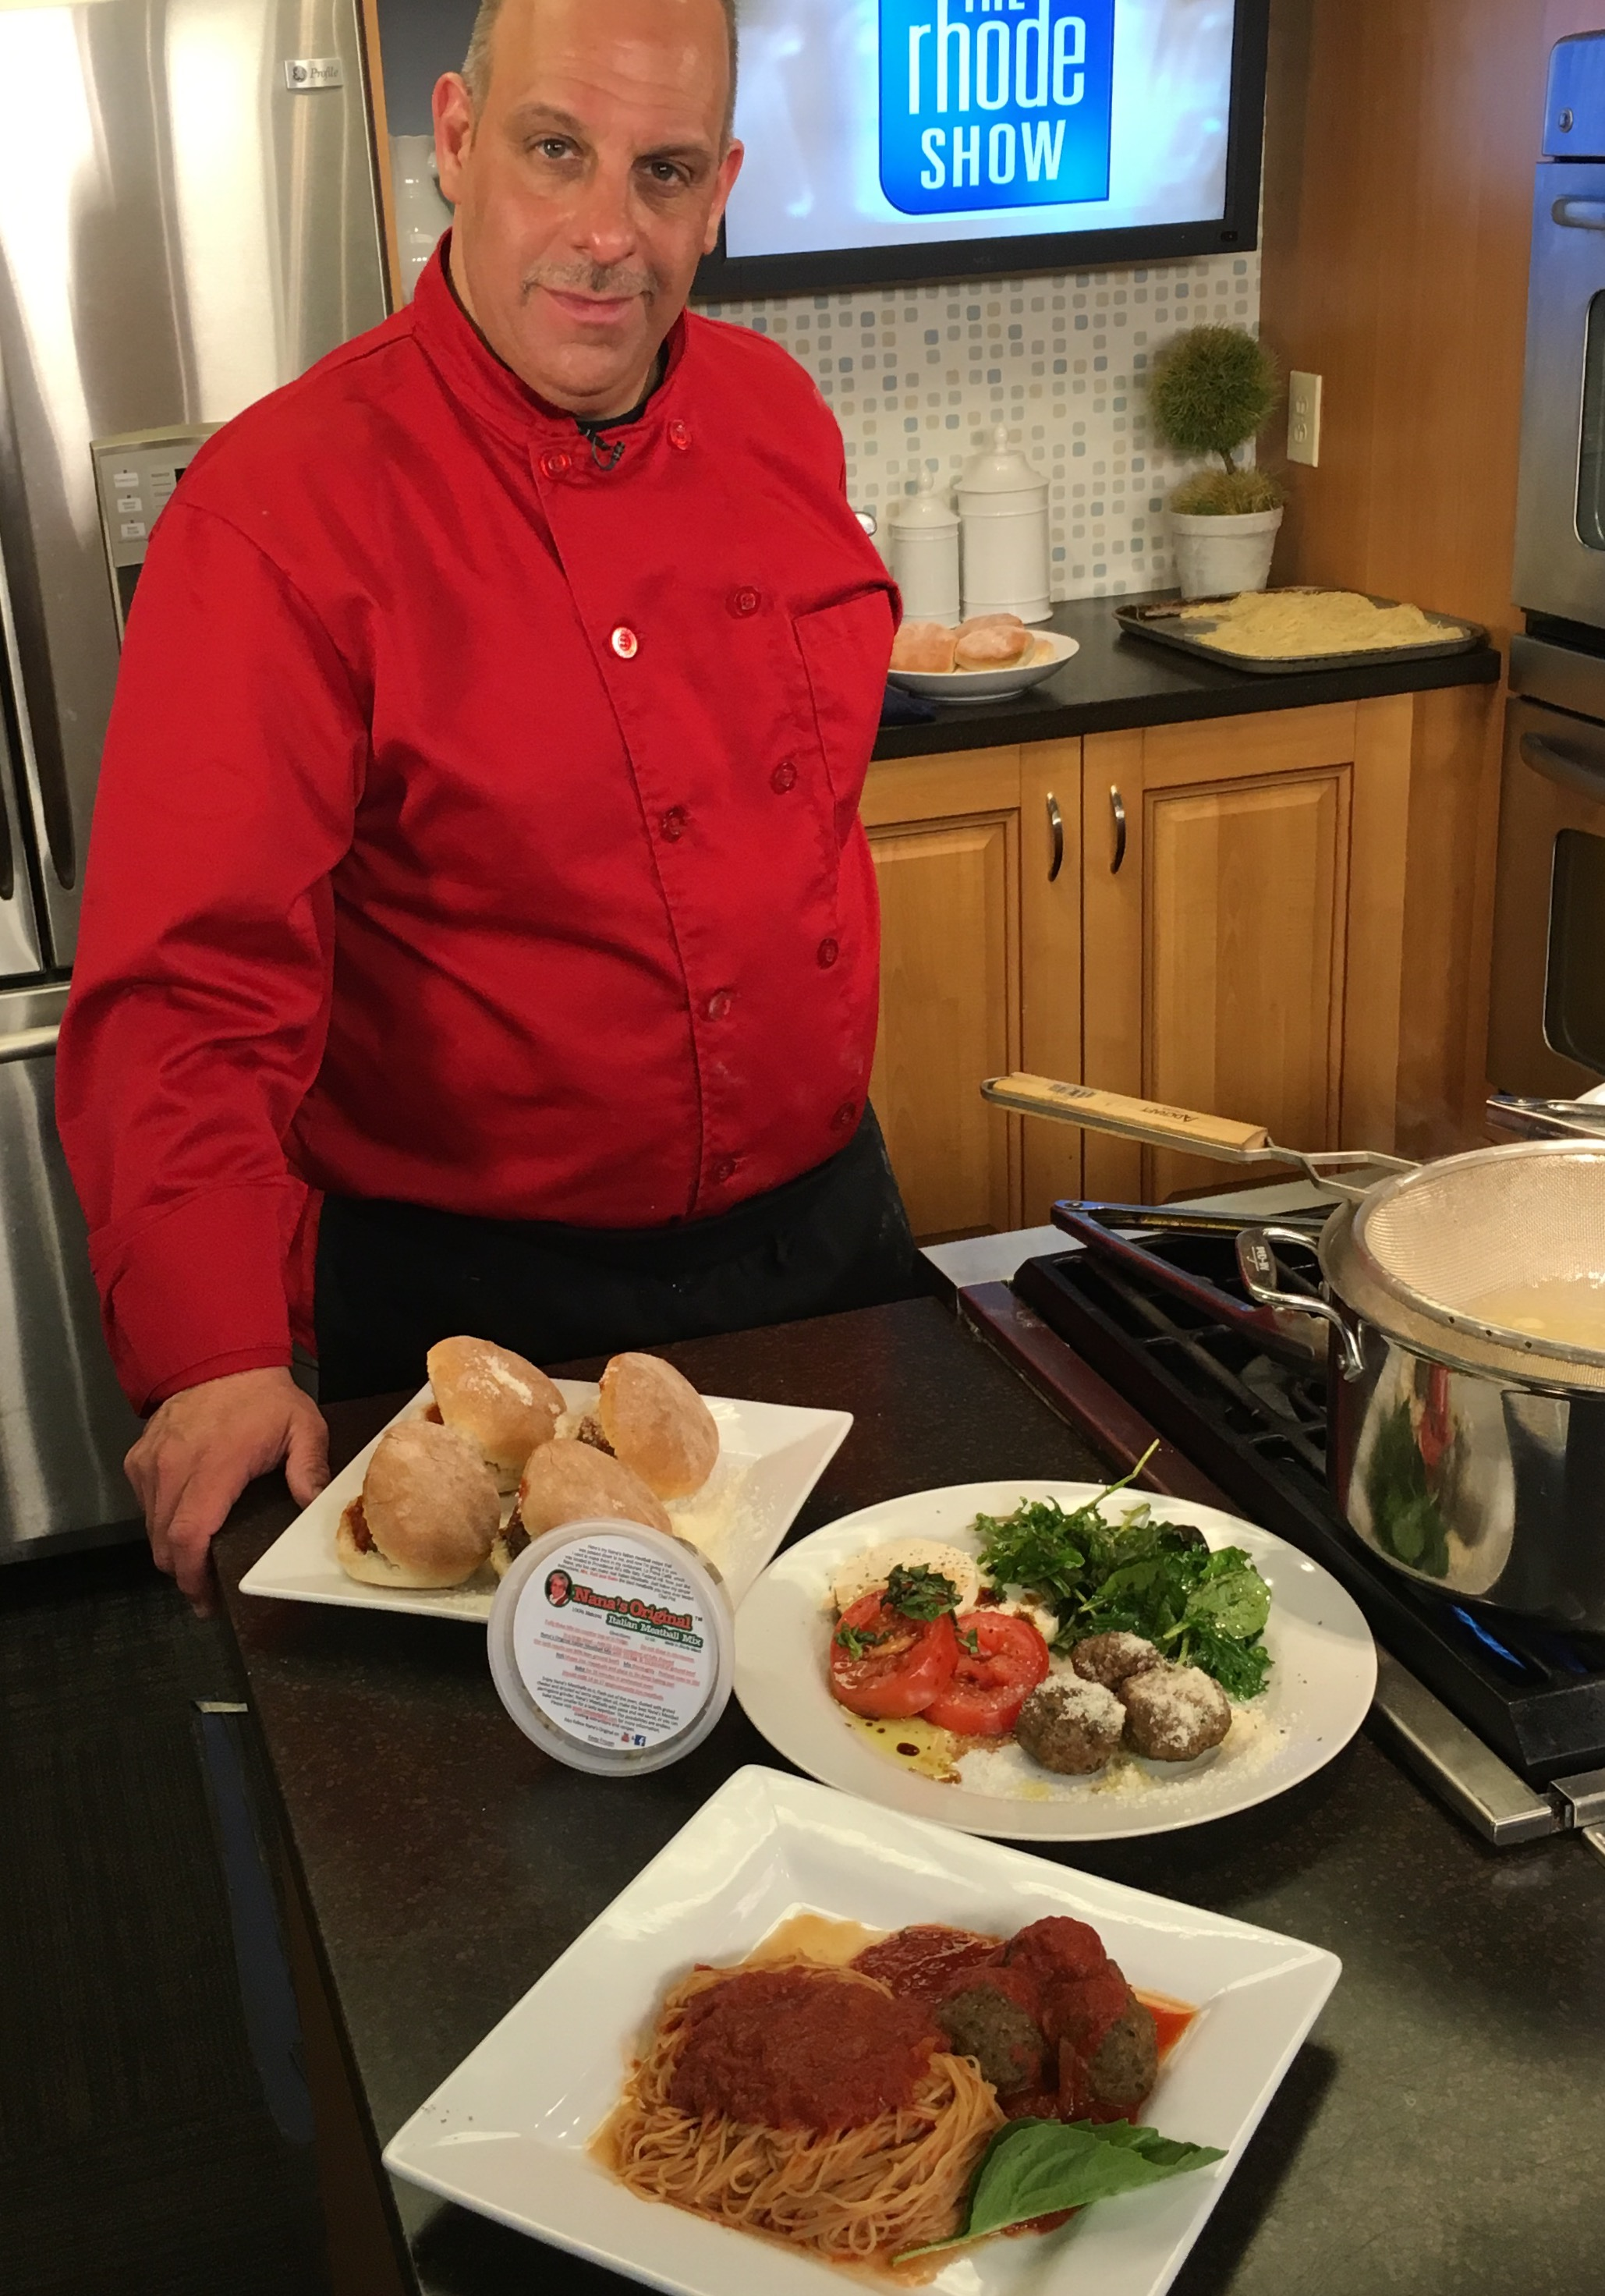 Chef Phil On the Rhode Show